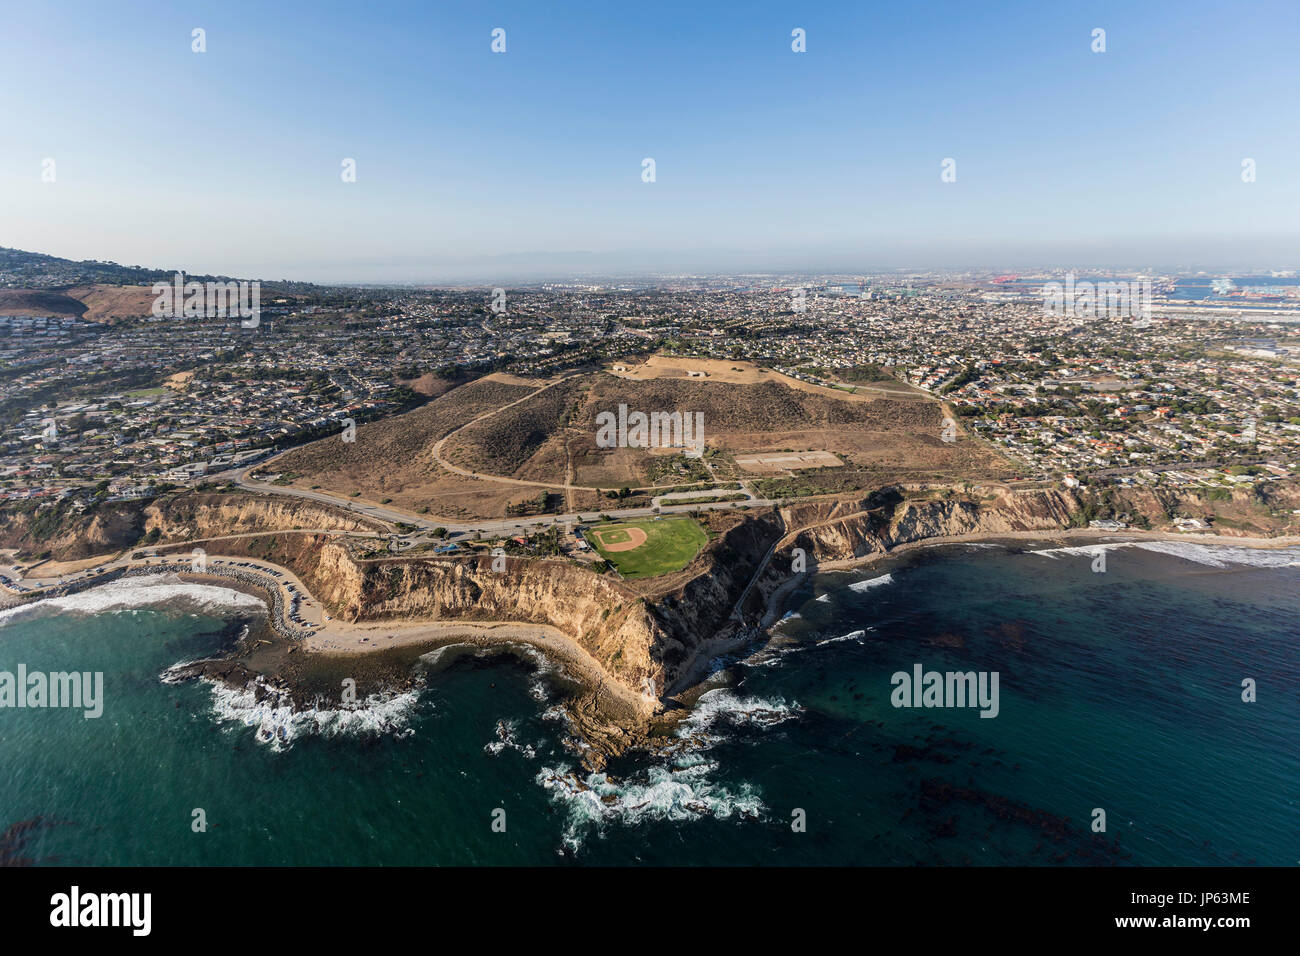 Aerial view Whites Point on the San Pedro coastline in Los Angeles, California. - Stock Image